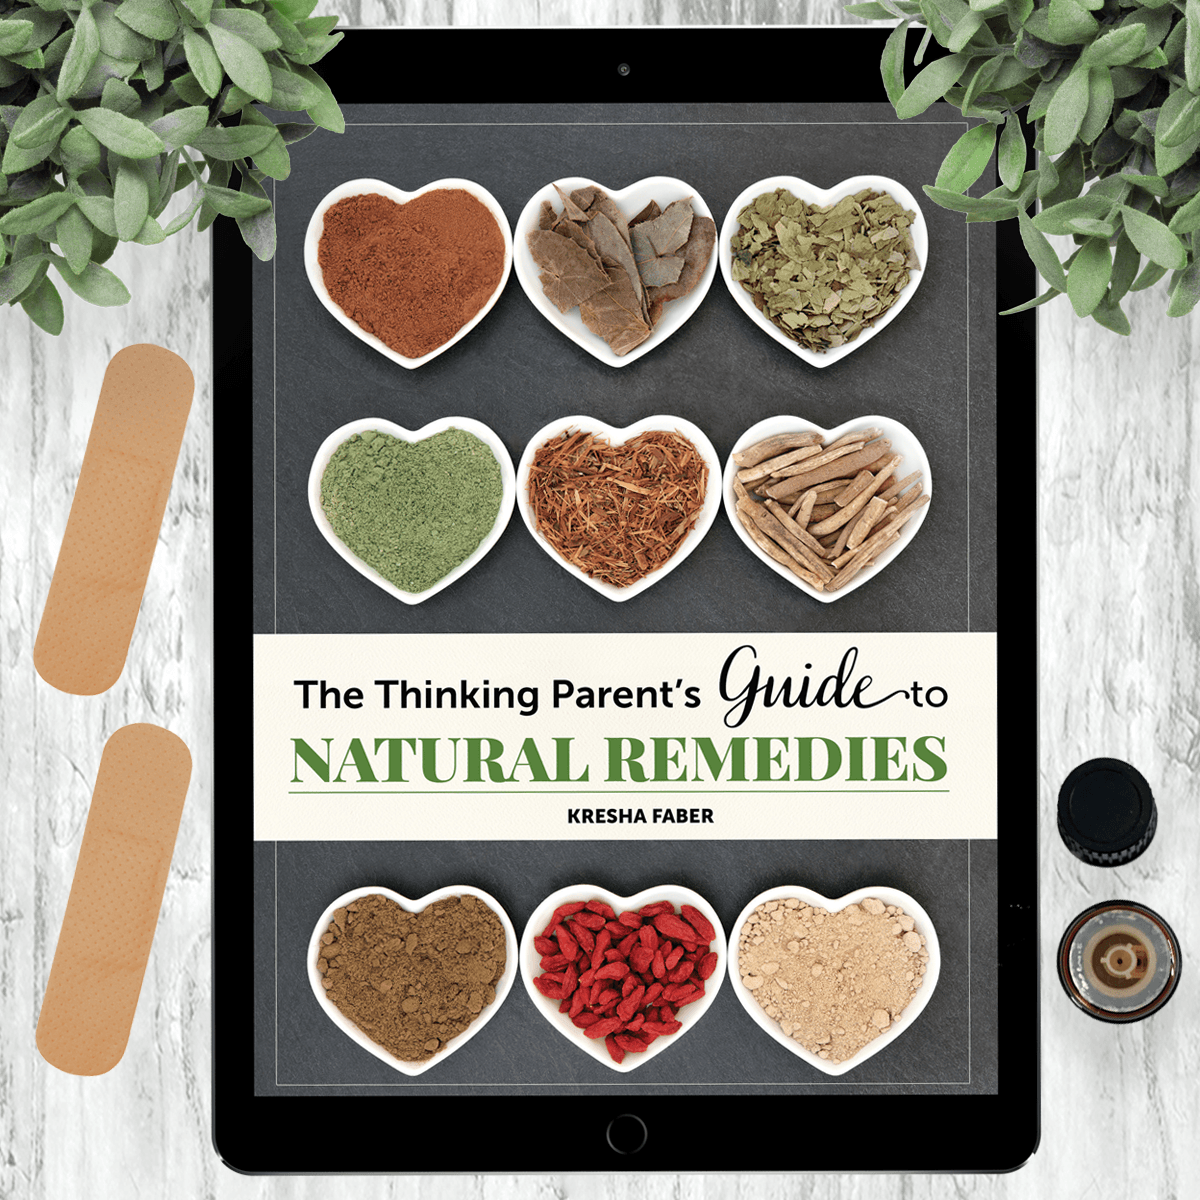 The Thinking Parent's Guide to Natural Remedies